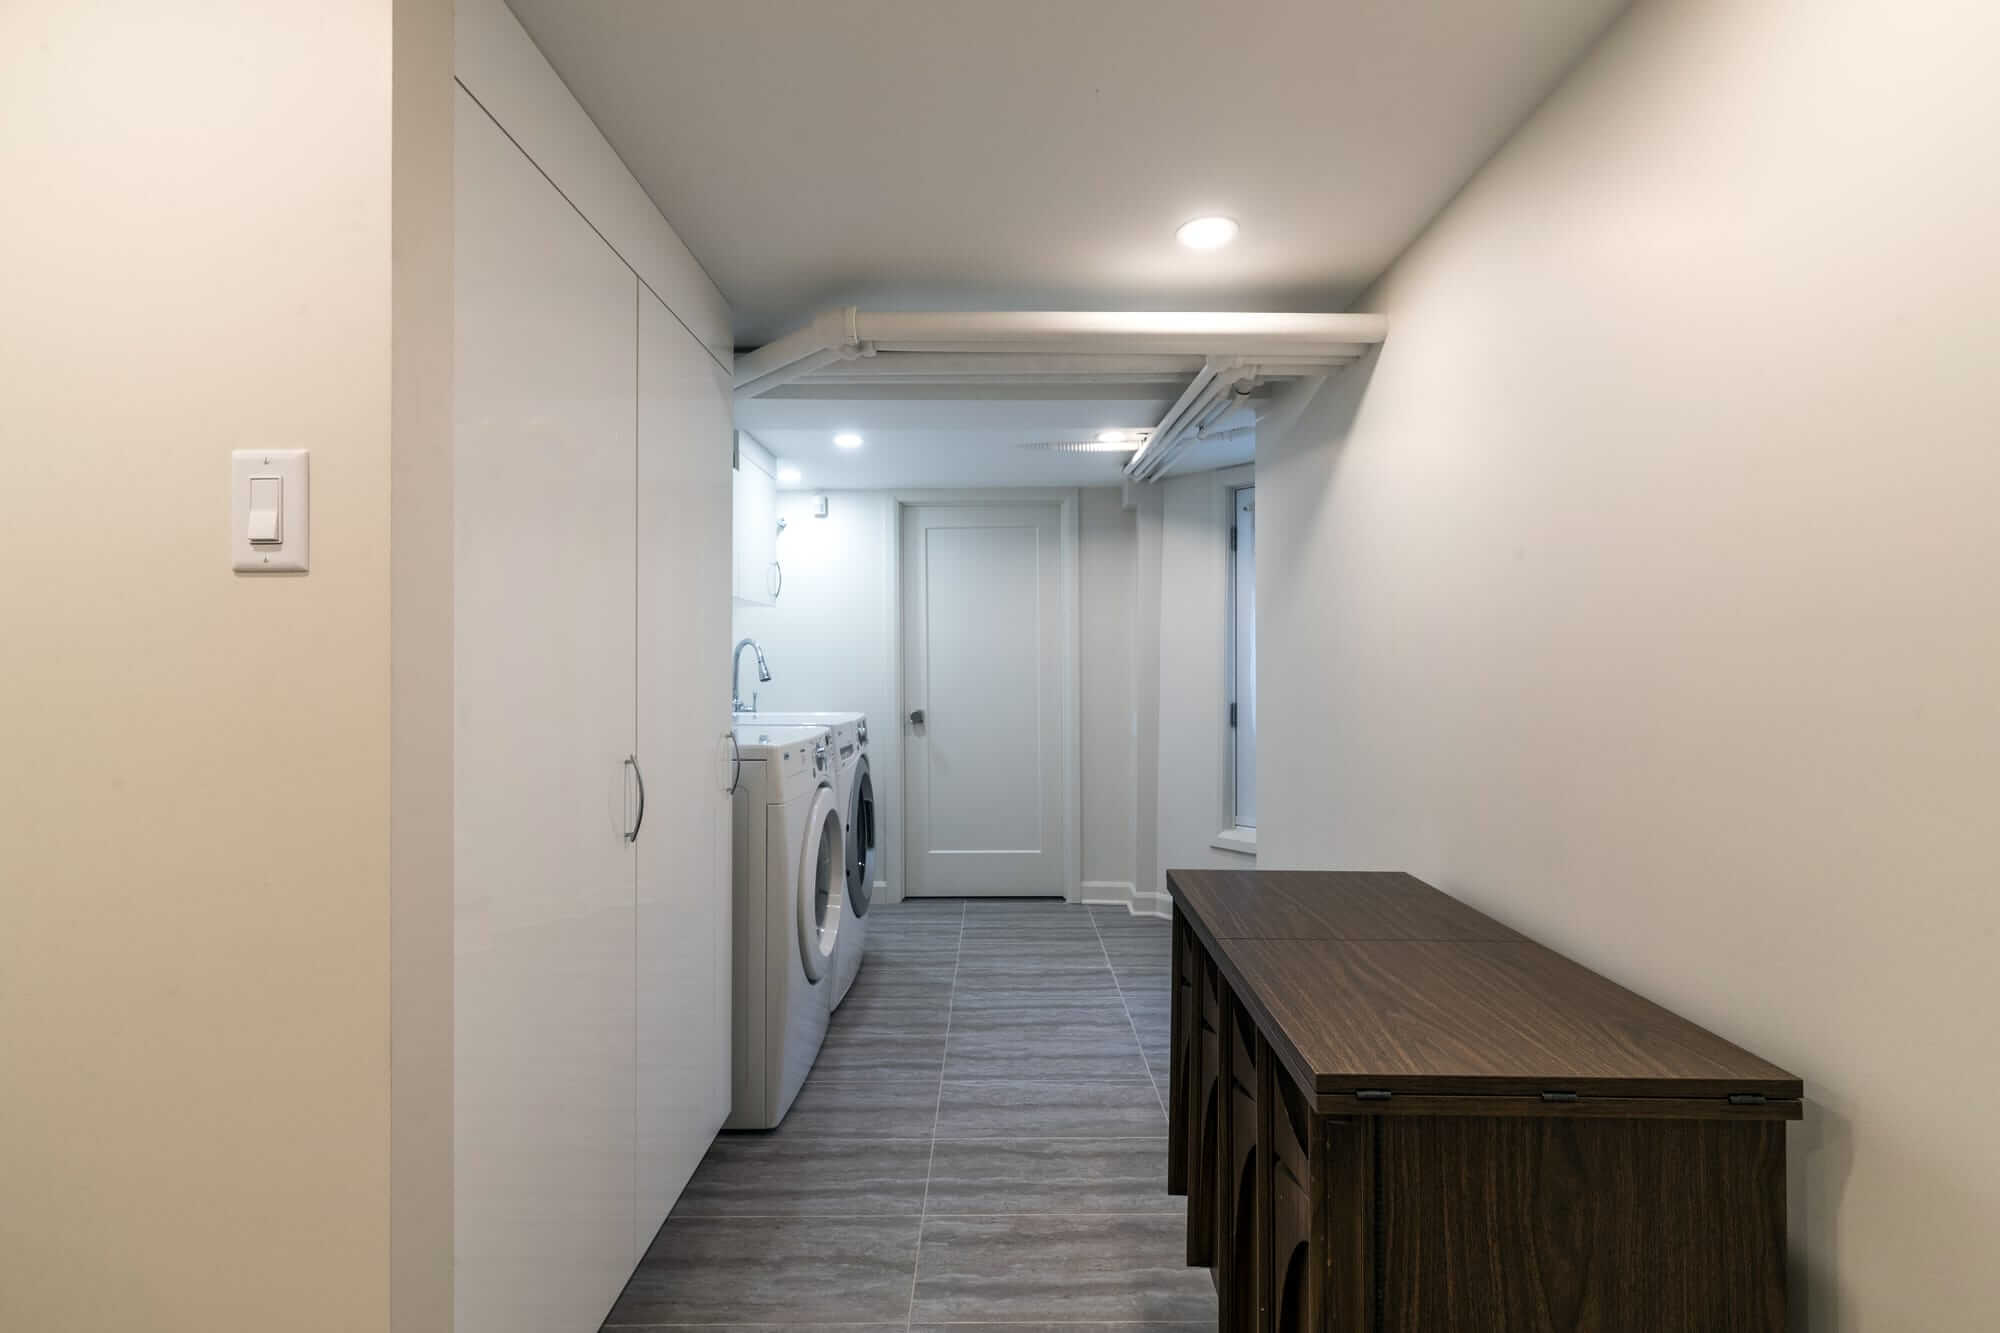 Basement laundry room with wooden furniture